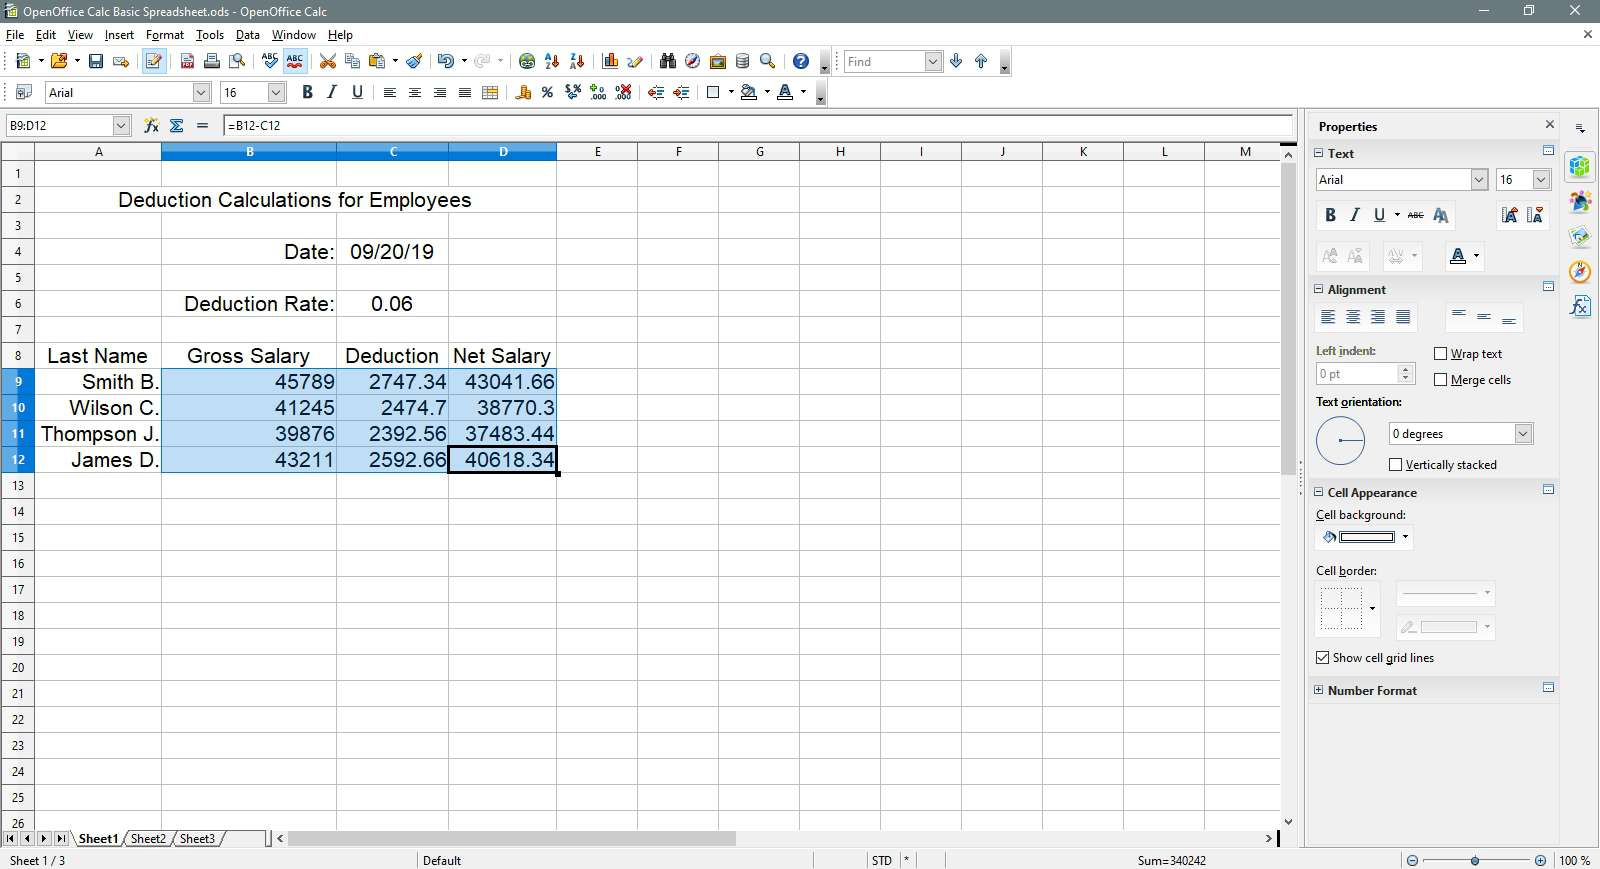 Cells are aligned centered and horizontal in OpenOffice Calc.